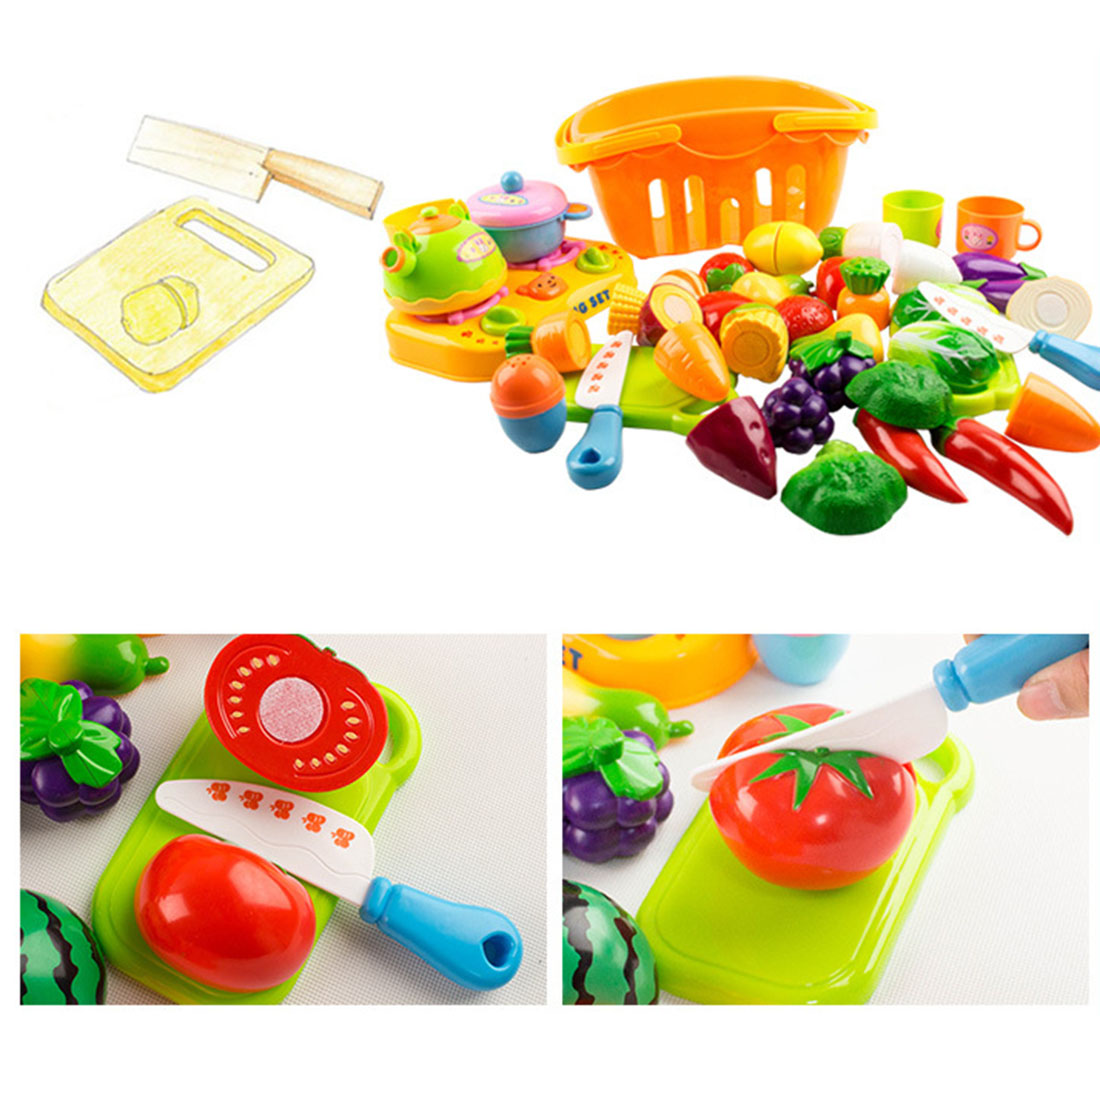 Plastic Fruit Vegetable Kitchen Cutting Toy Set of 14Pcs Prentend Kitchen Cooking Play Toys- Color Random